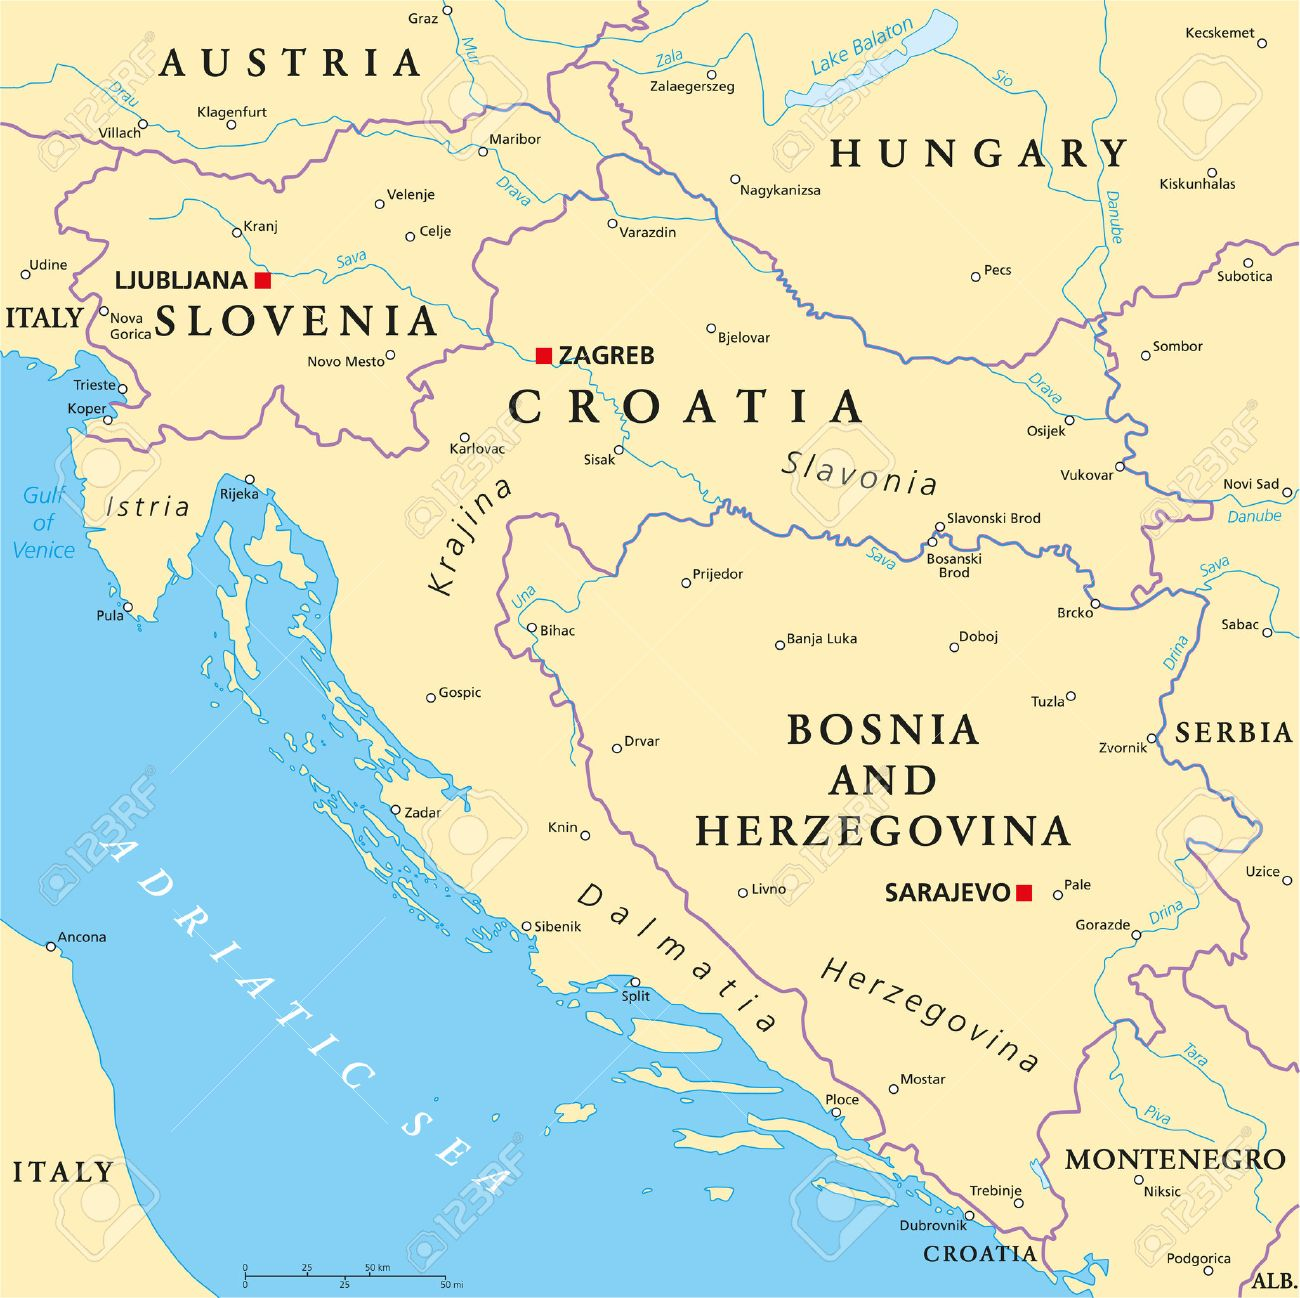 West Balkan Political Map Formed By Slovenia, Croatia And Bosnia ...